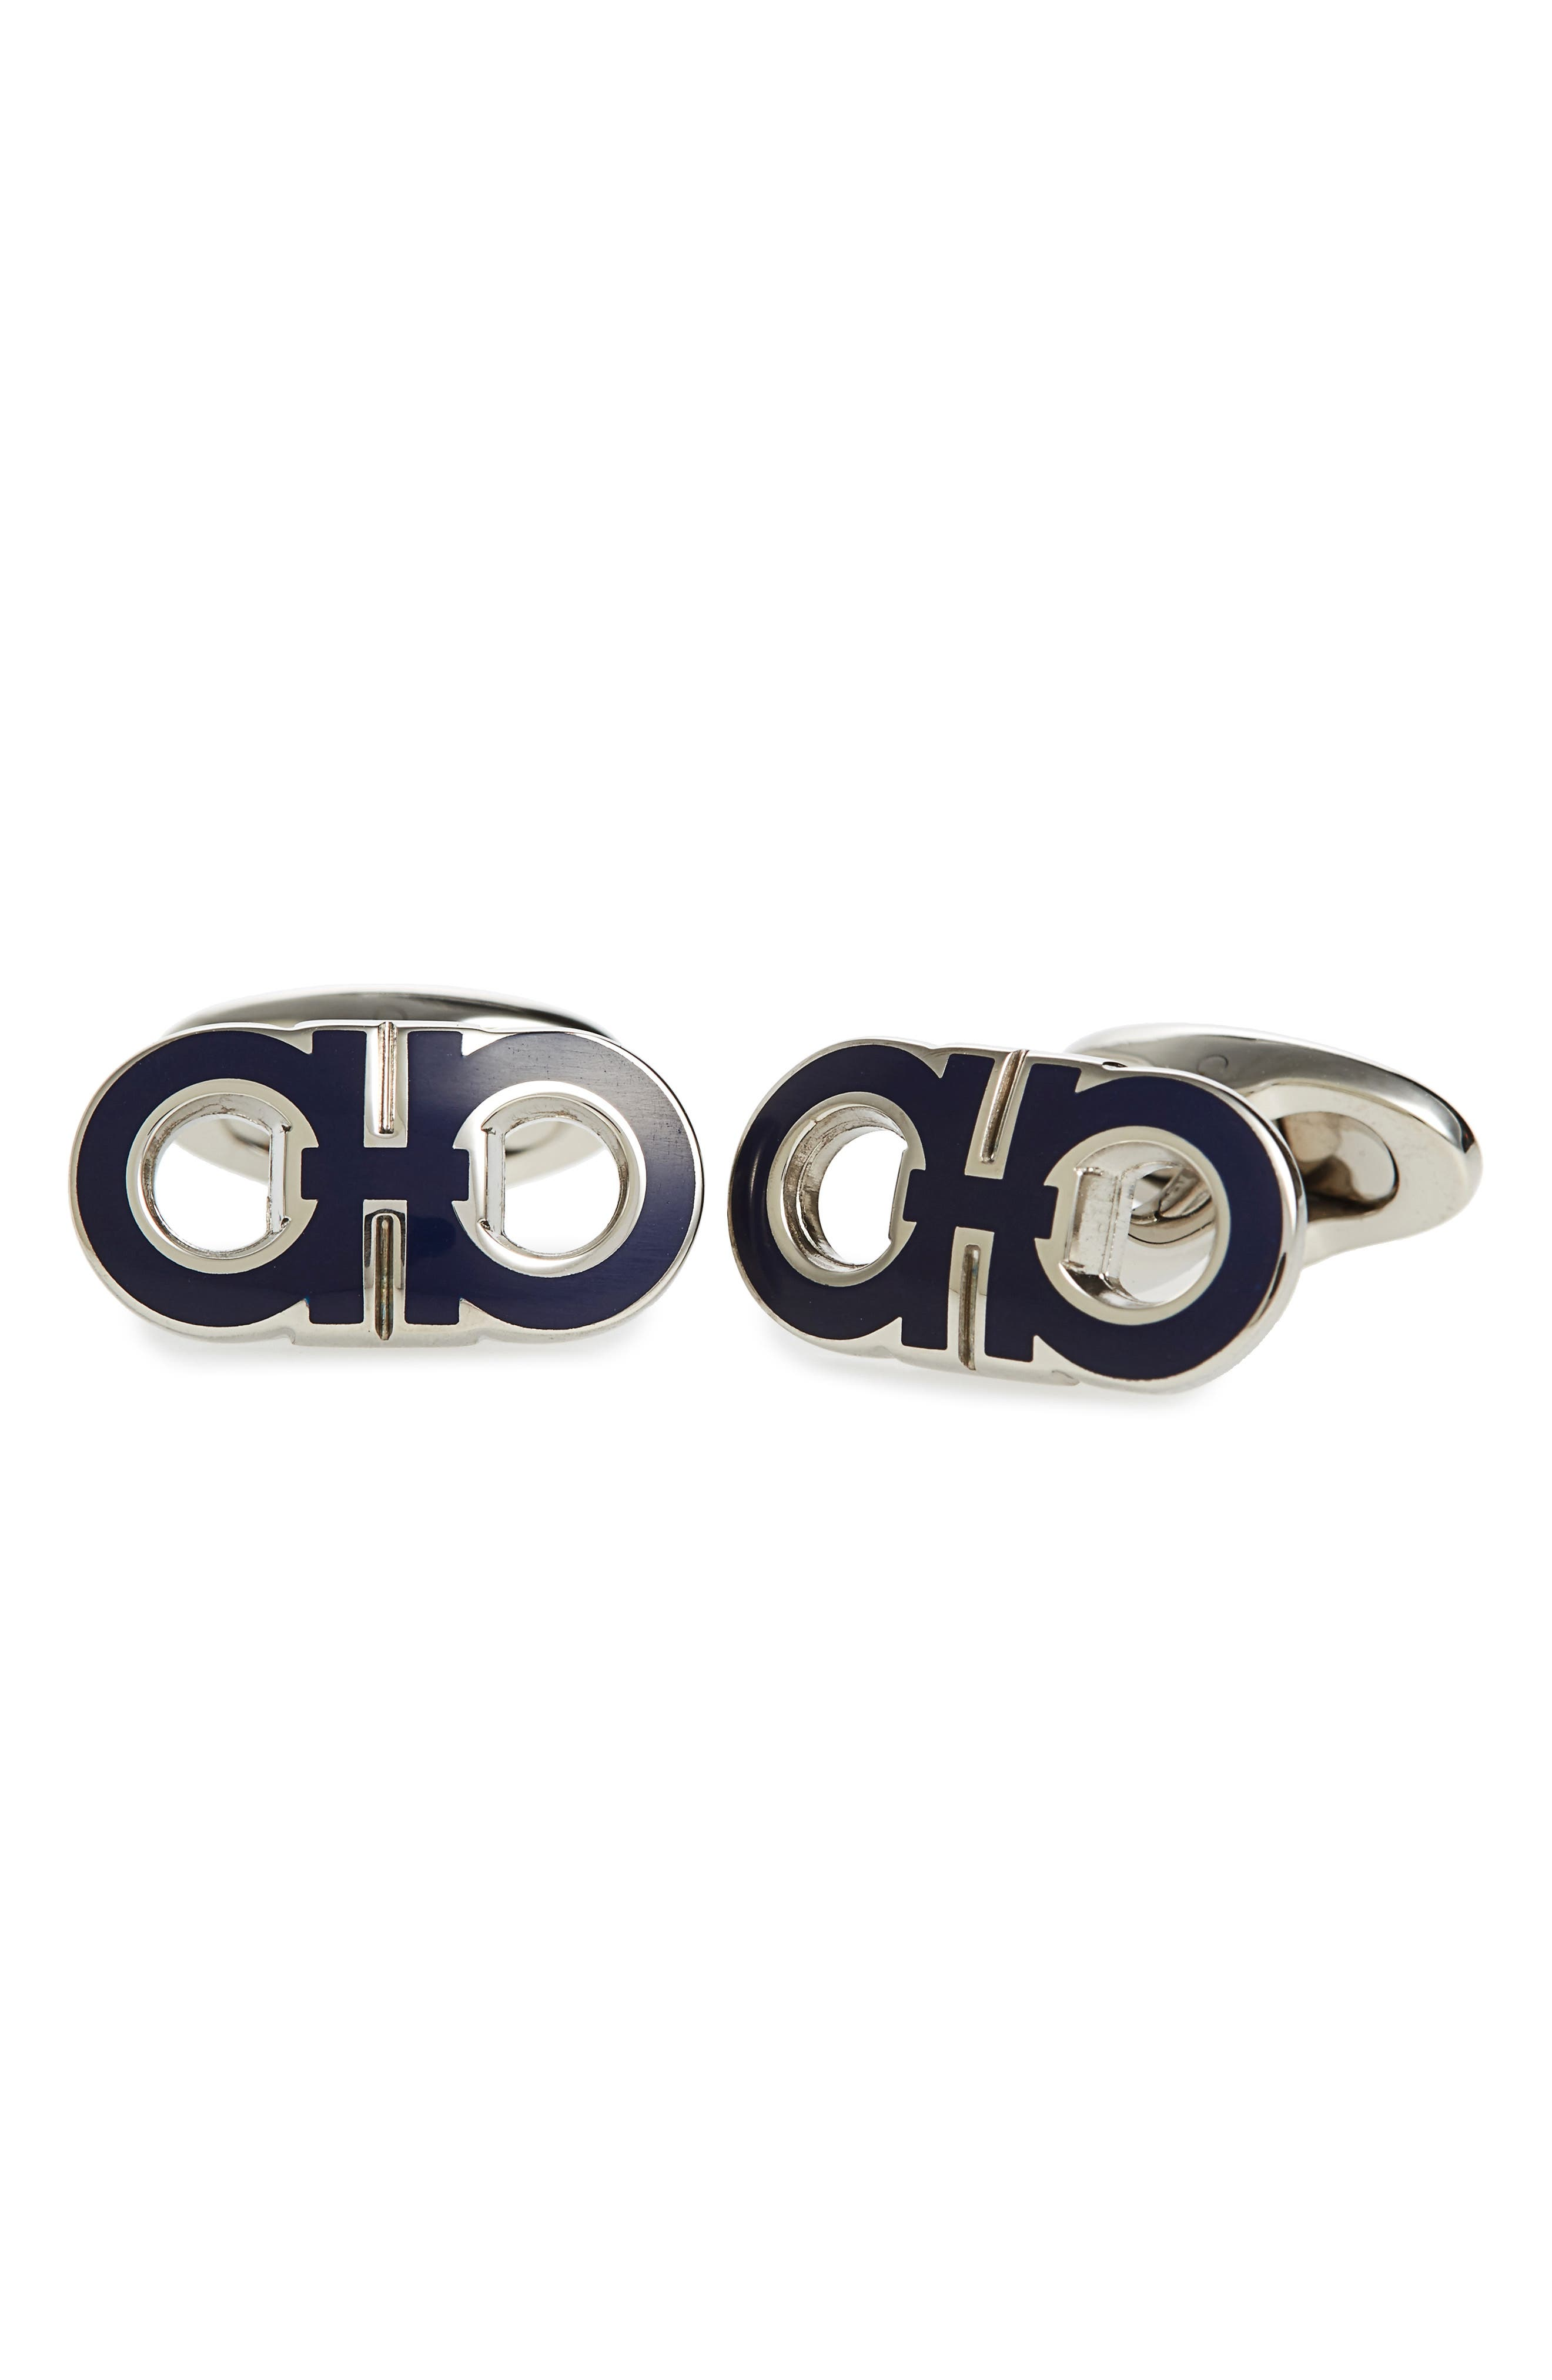 Salvatore Ferragamo Double Gancini Cuff Links